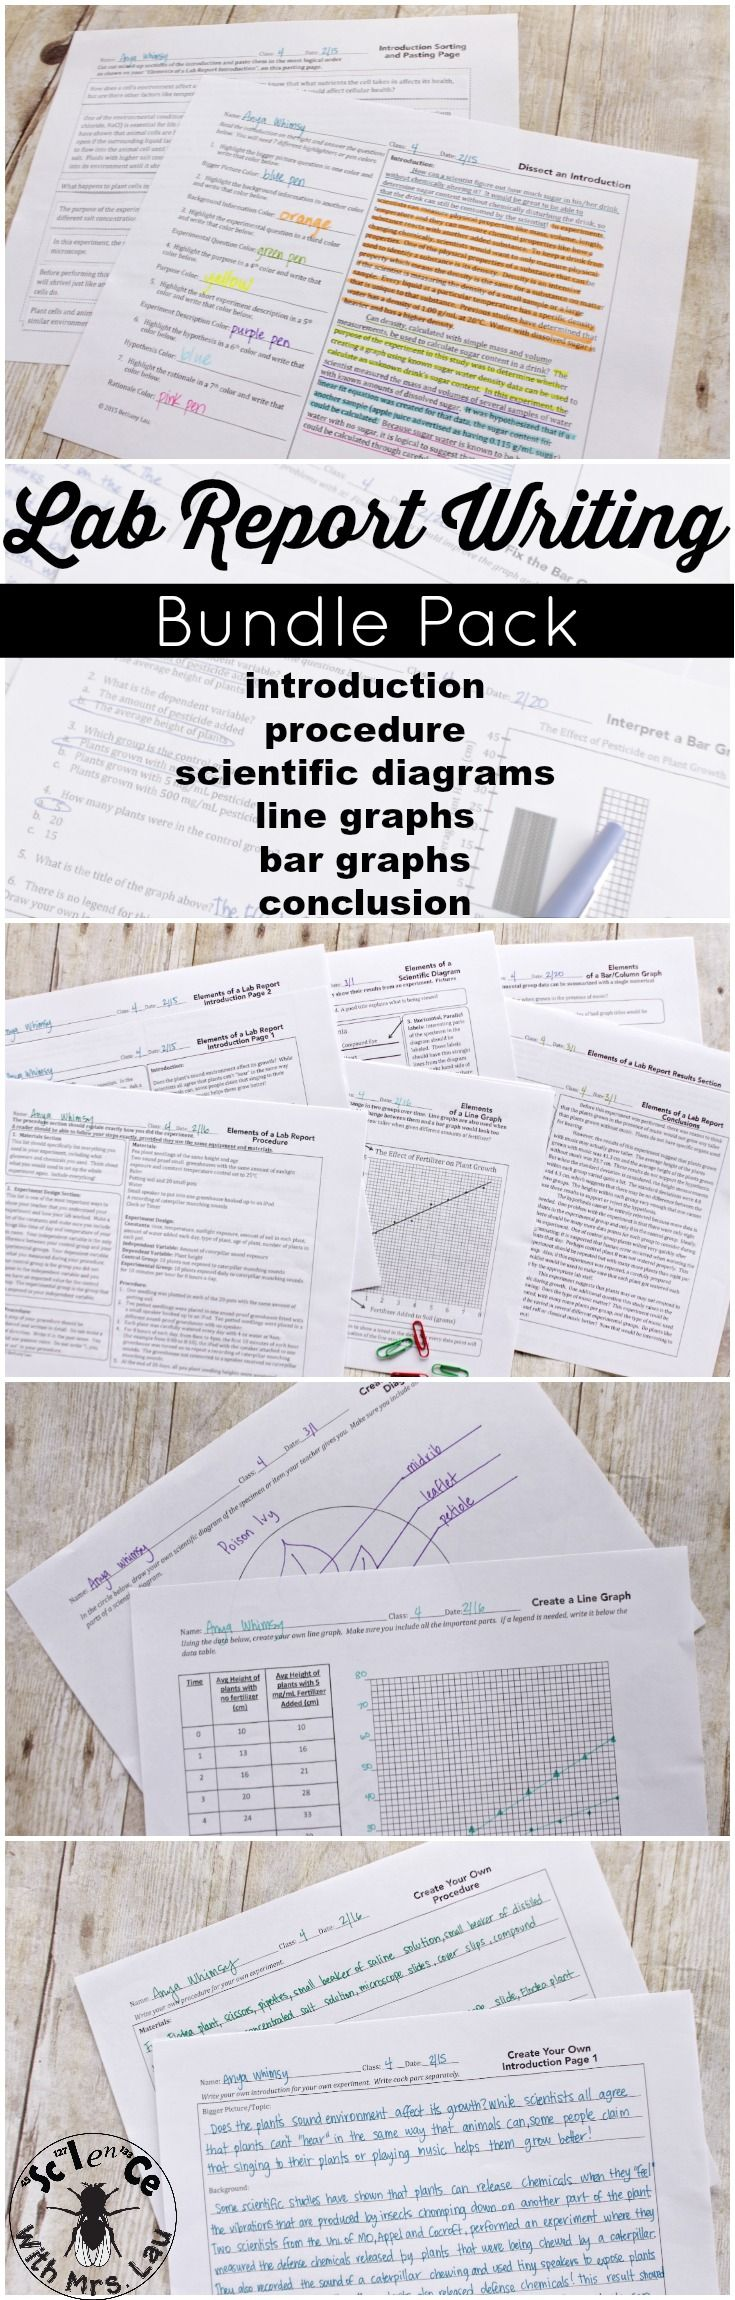 I created this bundle of activities because I have had students in my high school class who have never written a lab report!  This bundle shows them step by step how to write an introduction, a methods section, a data section, a conclusions section, and how to create different types of graphs for their lab report.